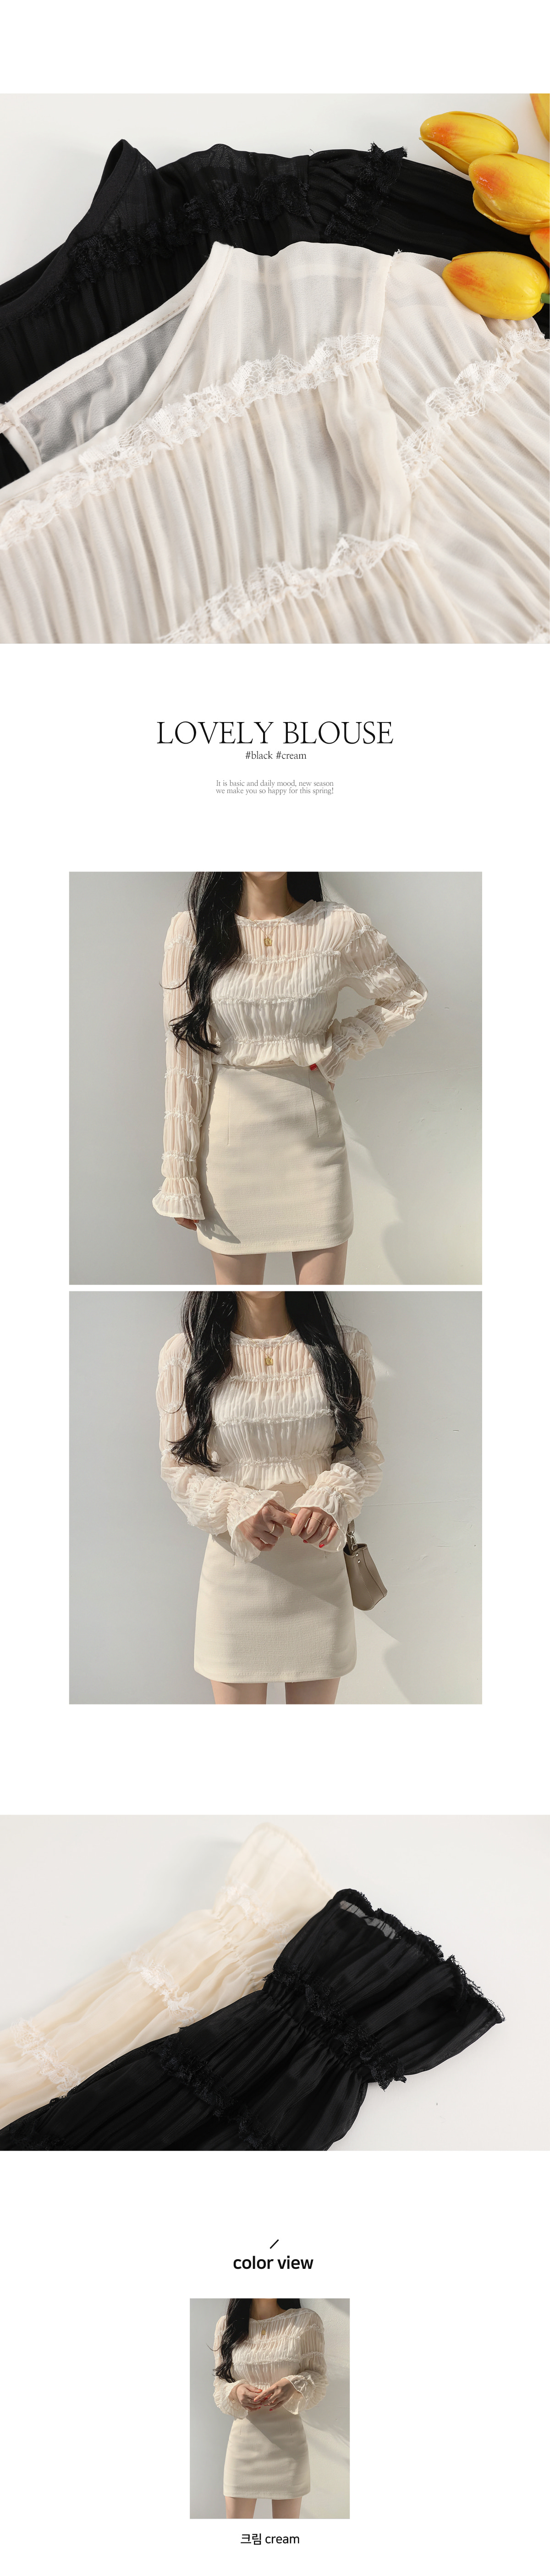 Esipril blouse